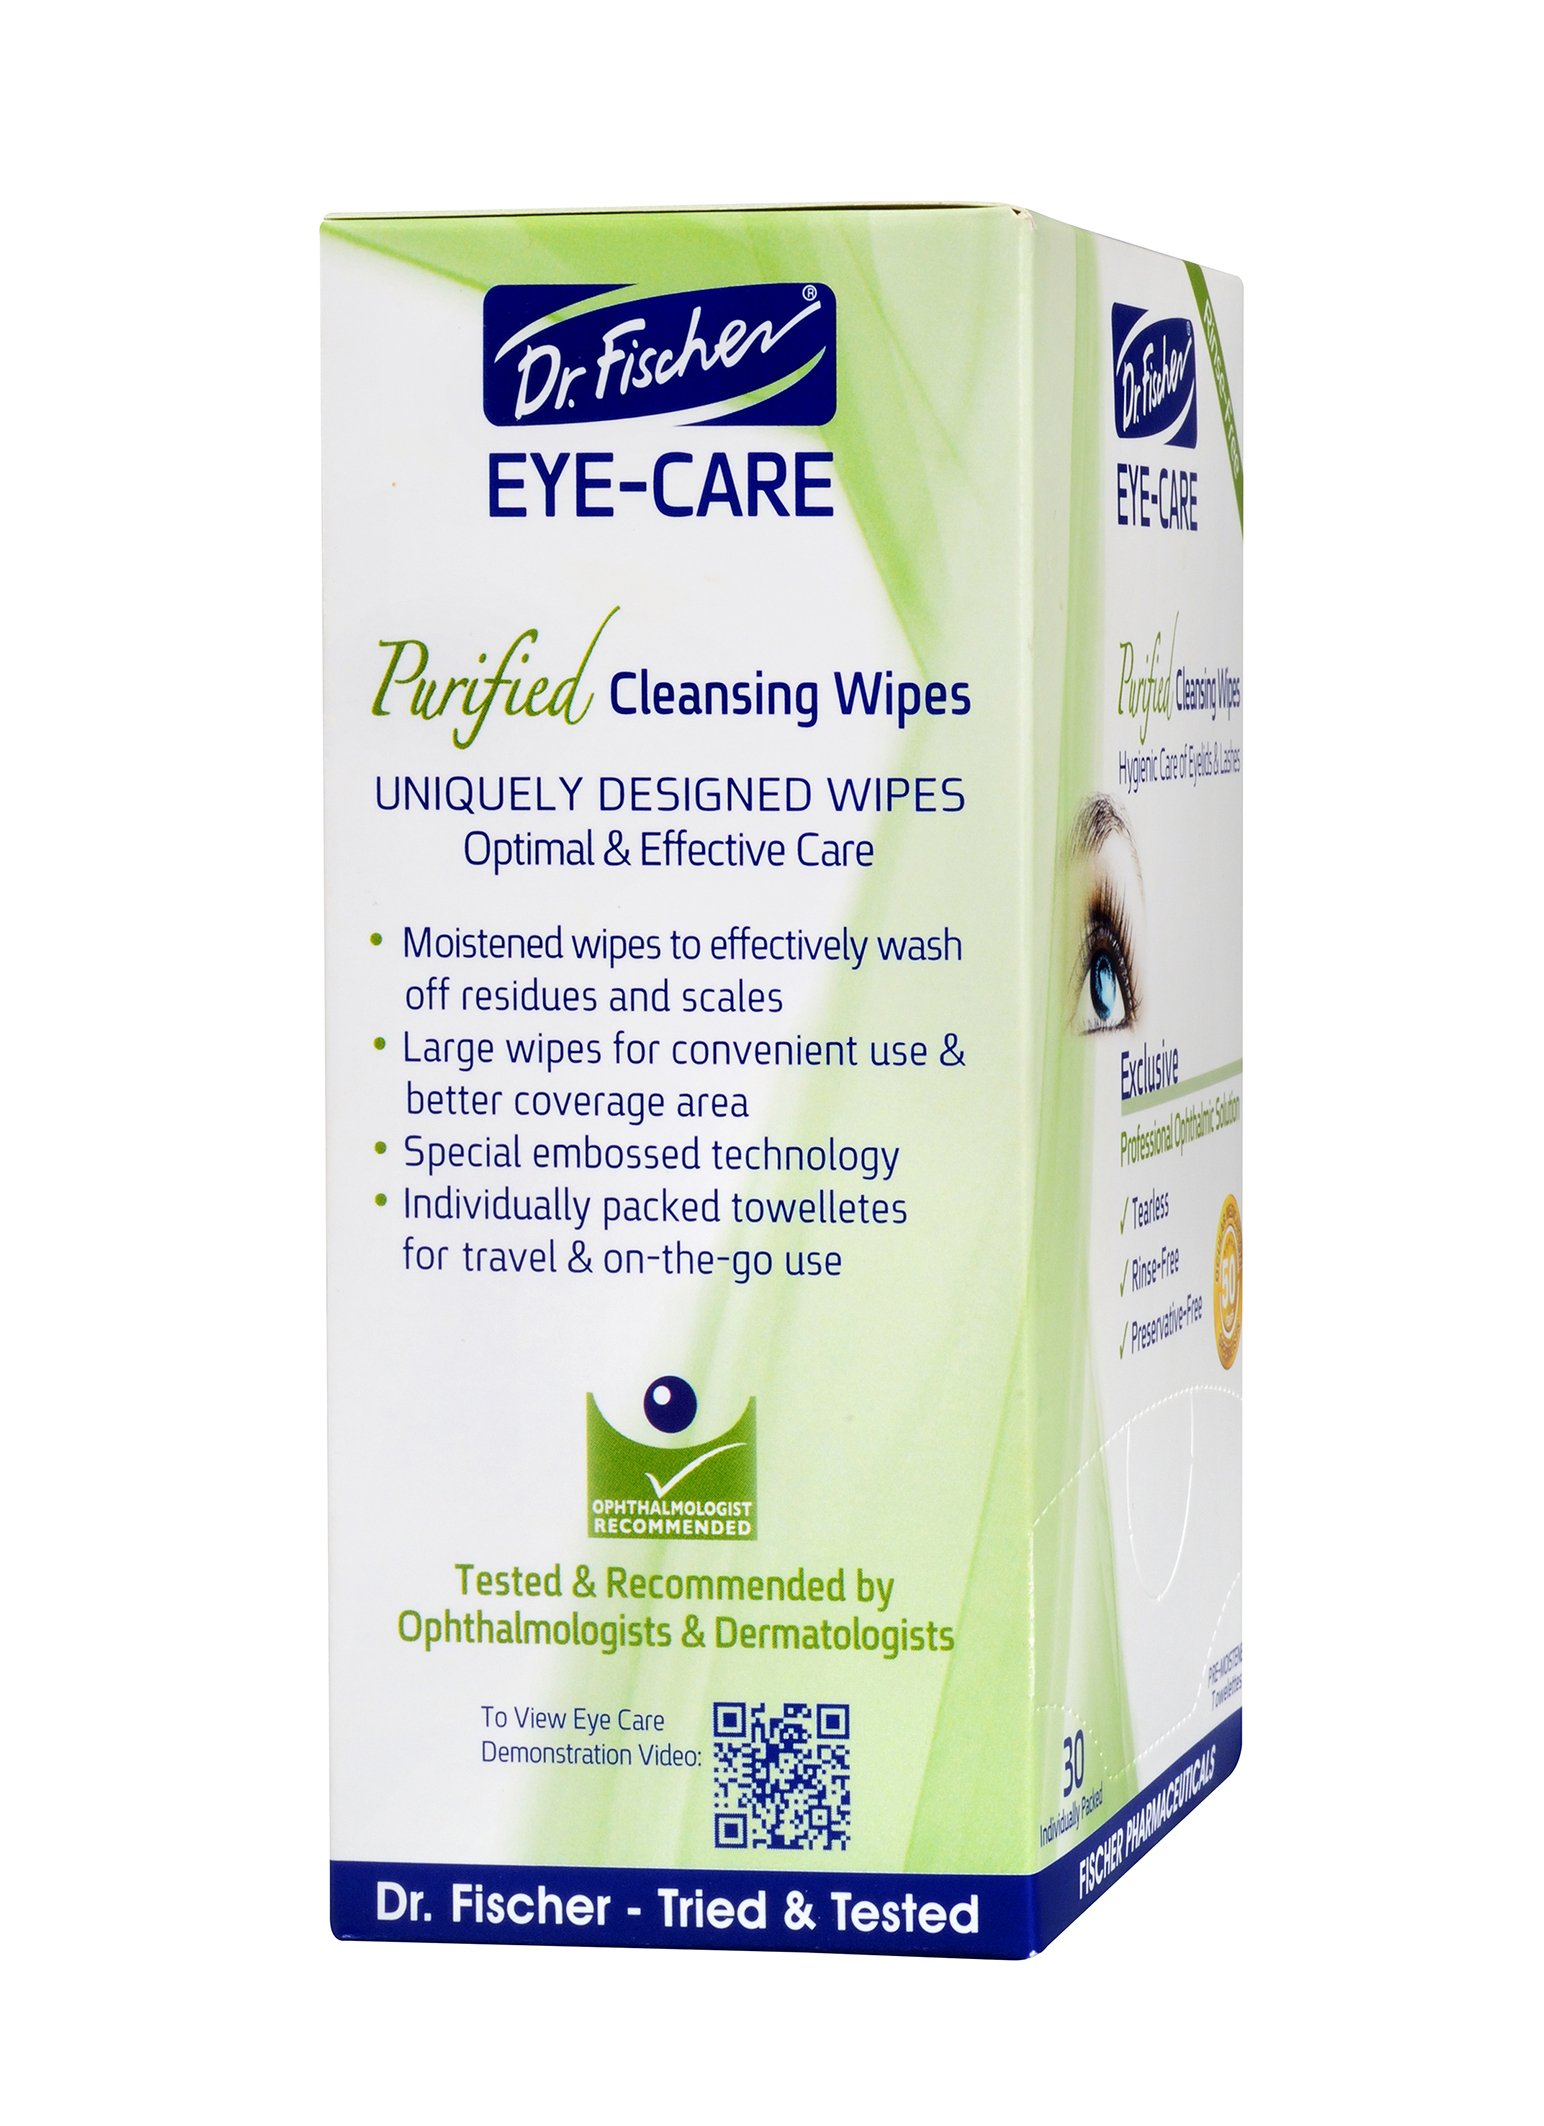 Dr. Fischer Premium, Purified, Non-Irritating & Hypoallergenic Eyelid Wipes Pre-moistened for complementary treatment of Red Eye, Dry Eye, and Blepharitis & Conjunctivitis Cleanses Make-up (Pack of 6) by Dr. Fischer (Image #3)